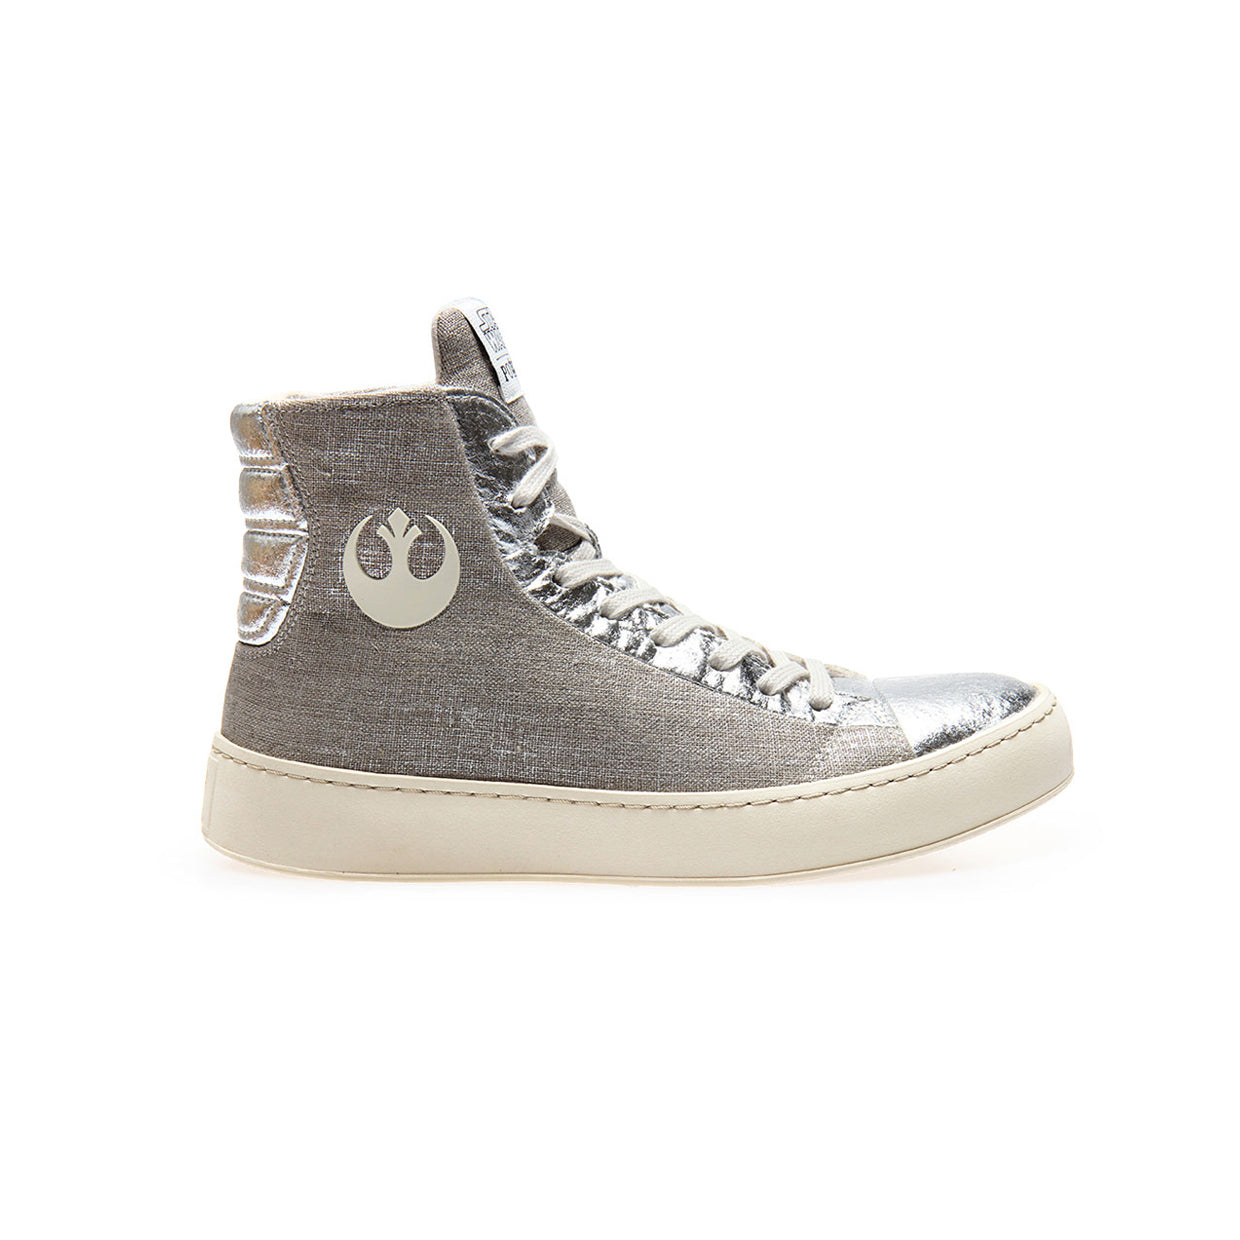 c4f655395 OFFICIAL Star Wars Womens RESISTANCE Limited Edition High-Top ...